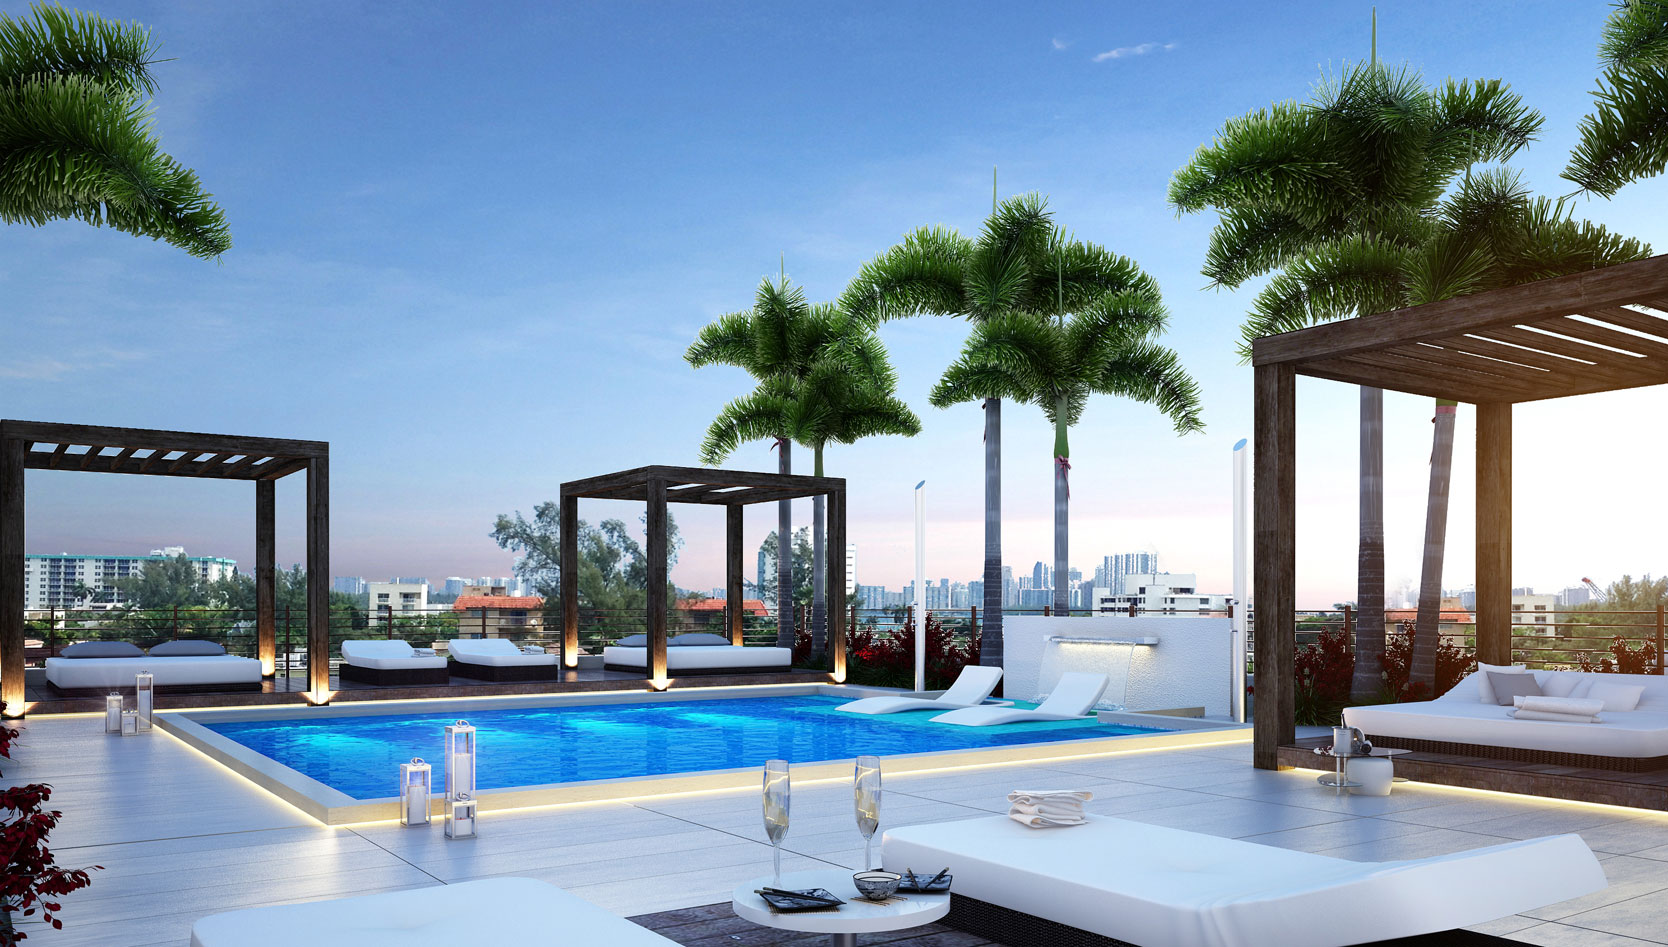 Bay Breeze Residences Pool Deck New Build Homes